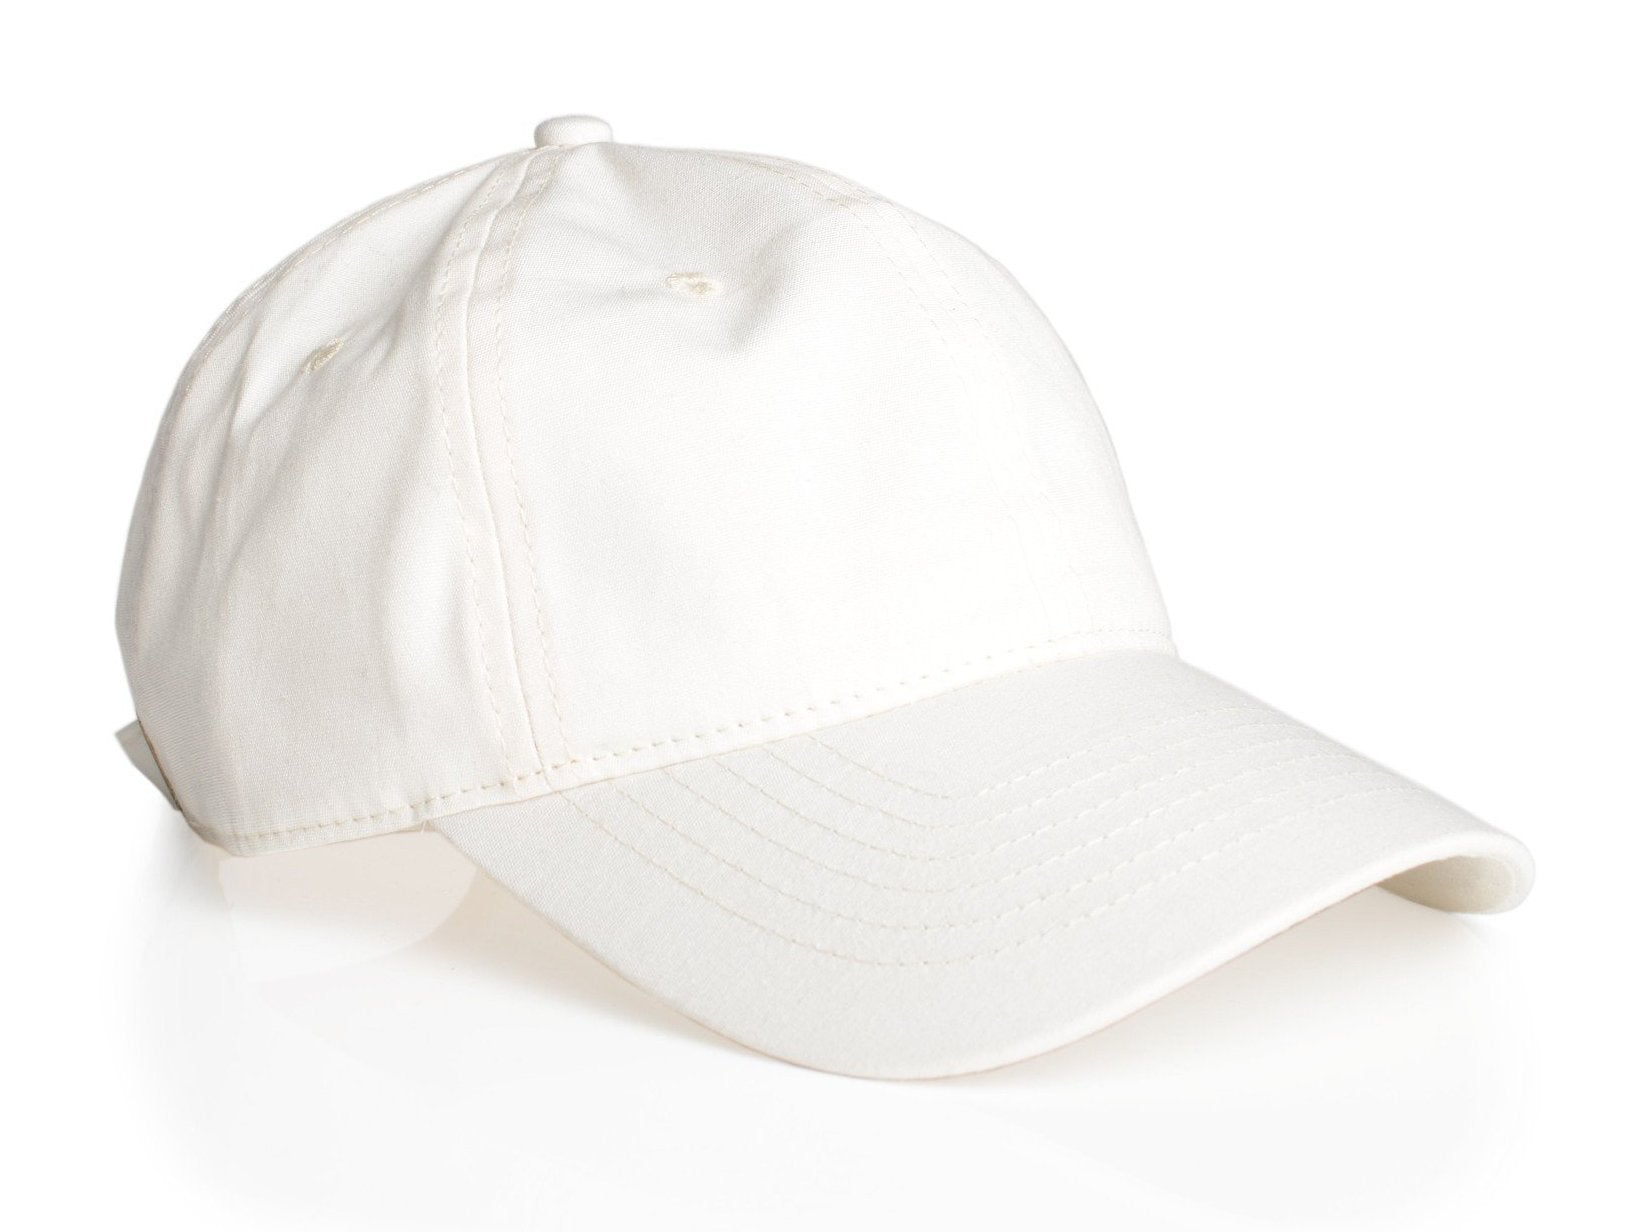 Davie 6 panel cap as colour 1111